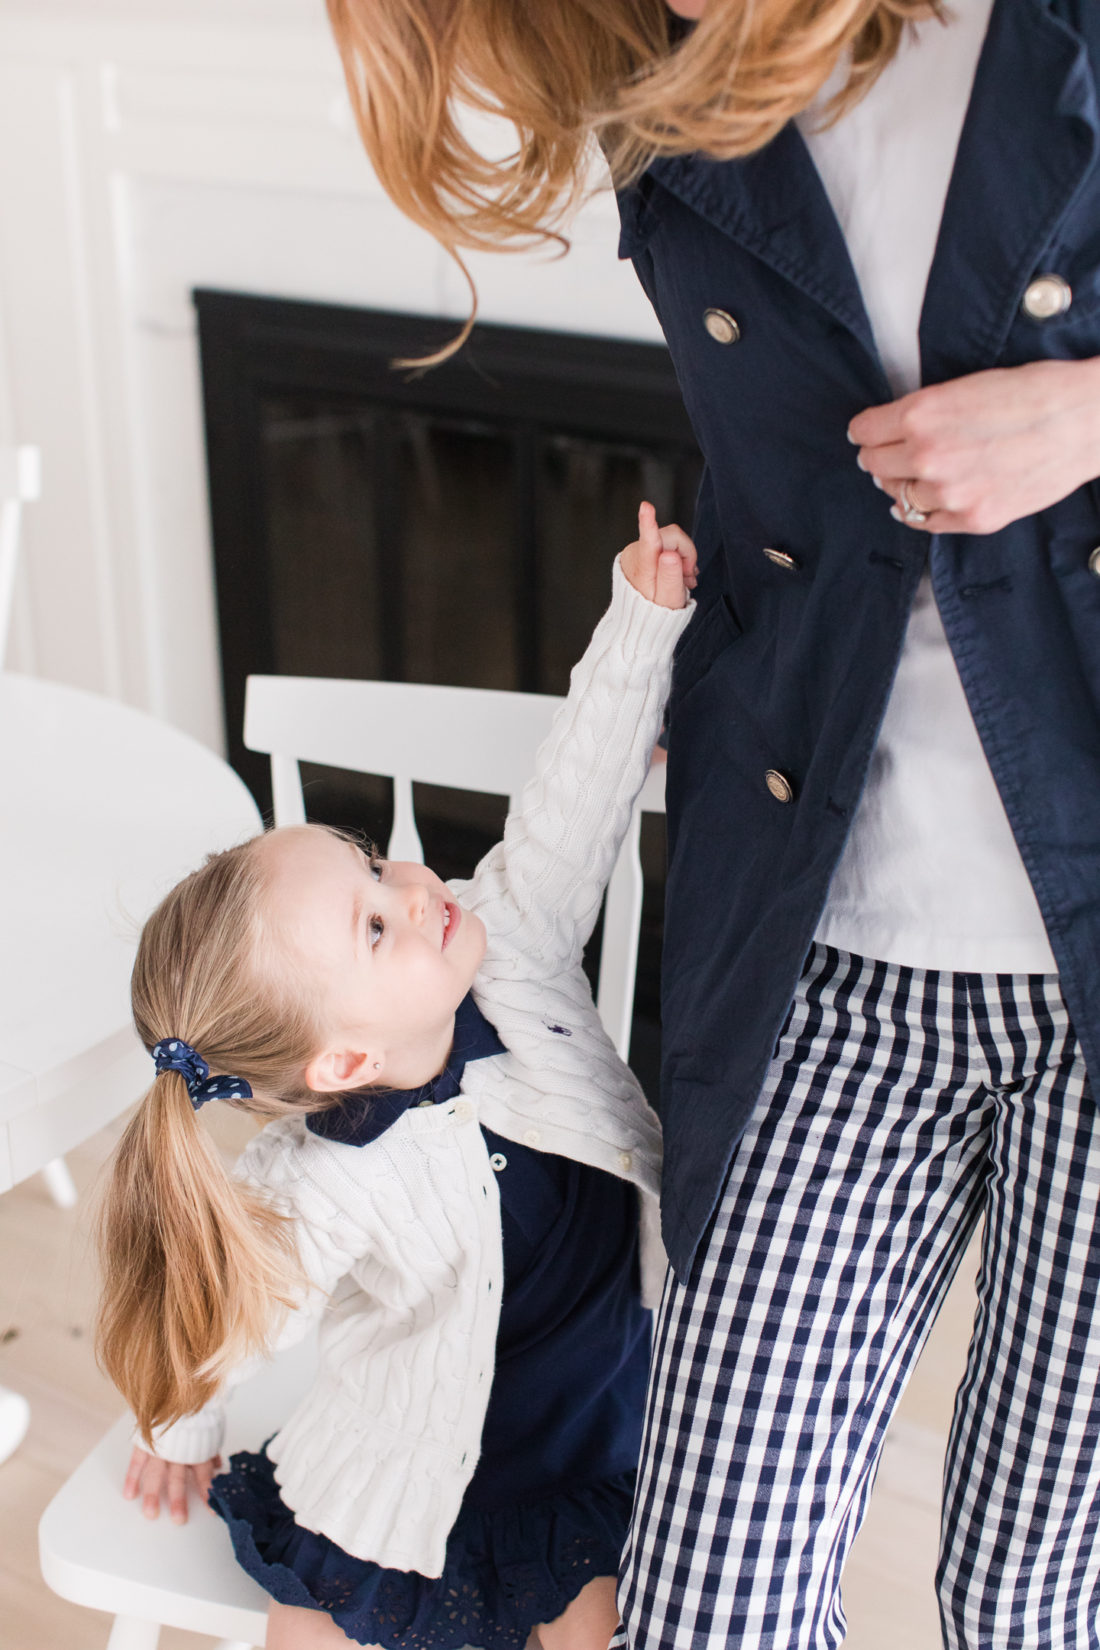 Marlowe Martino points to the buttons on her Mom's navy blue trenchcoat